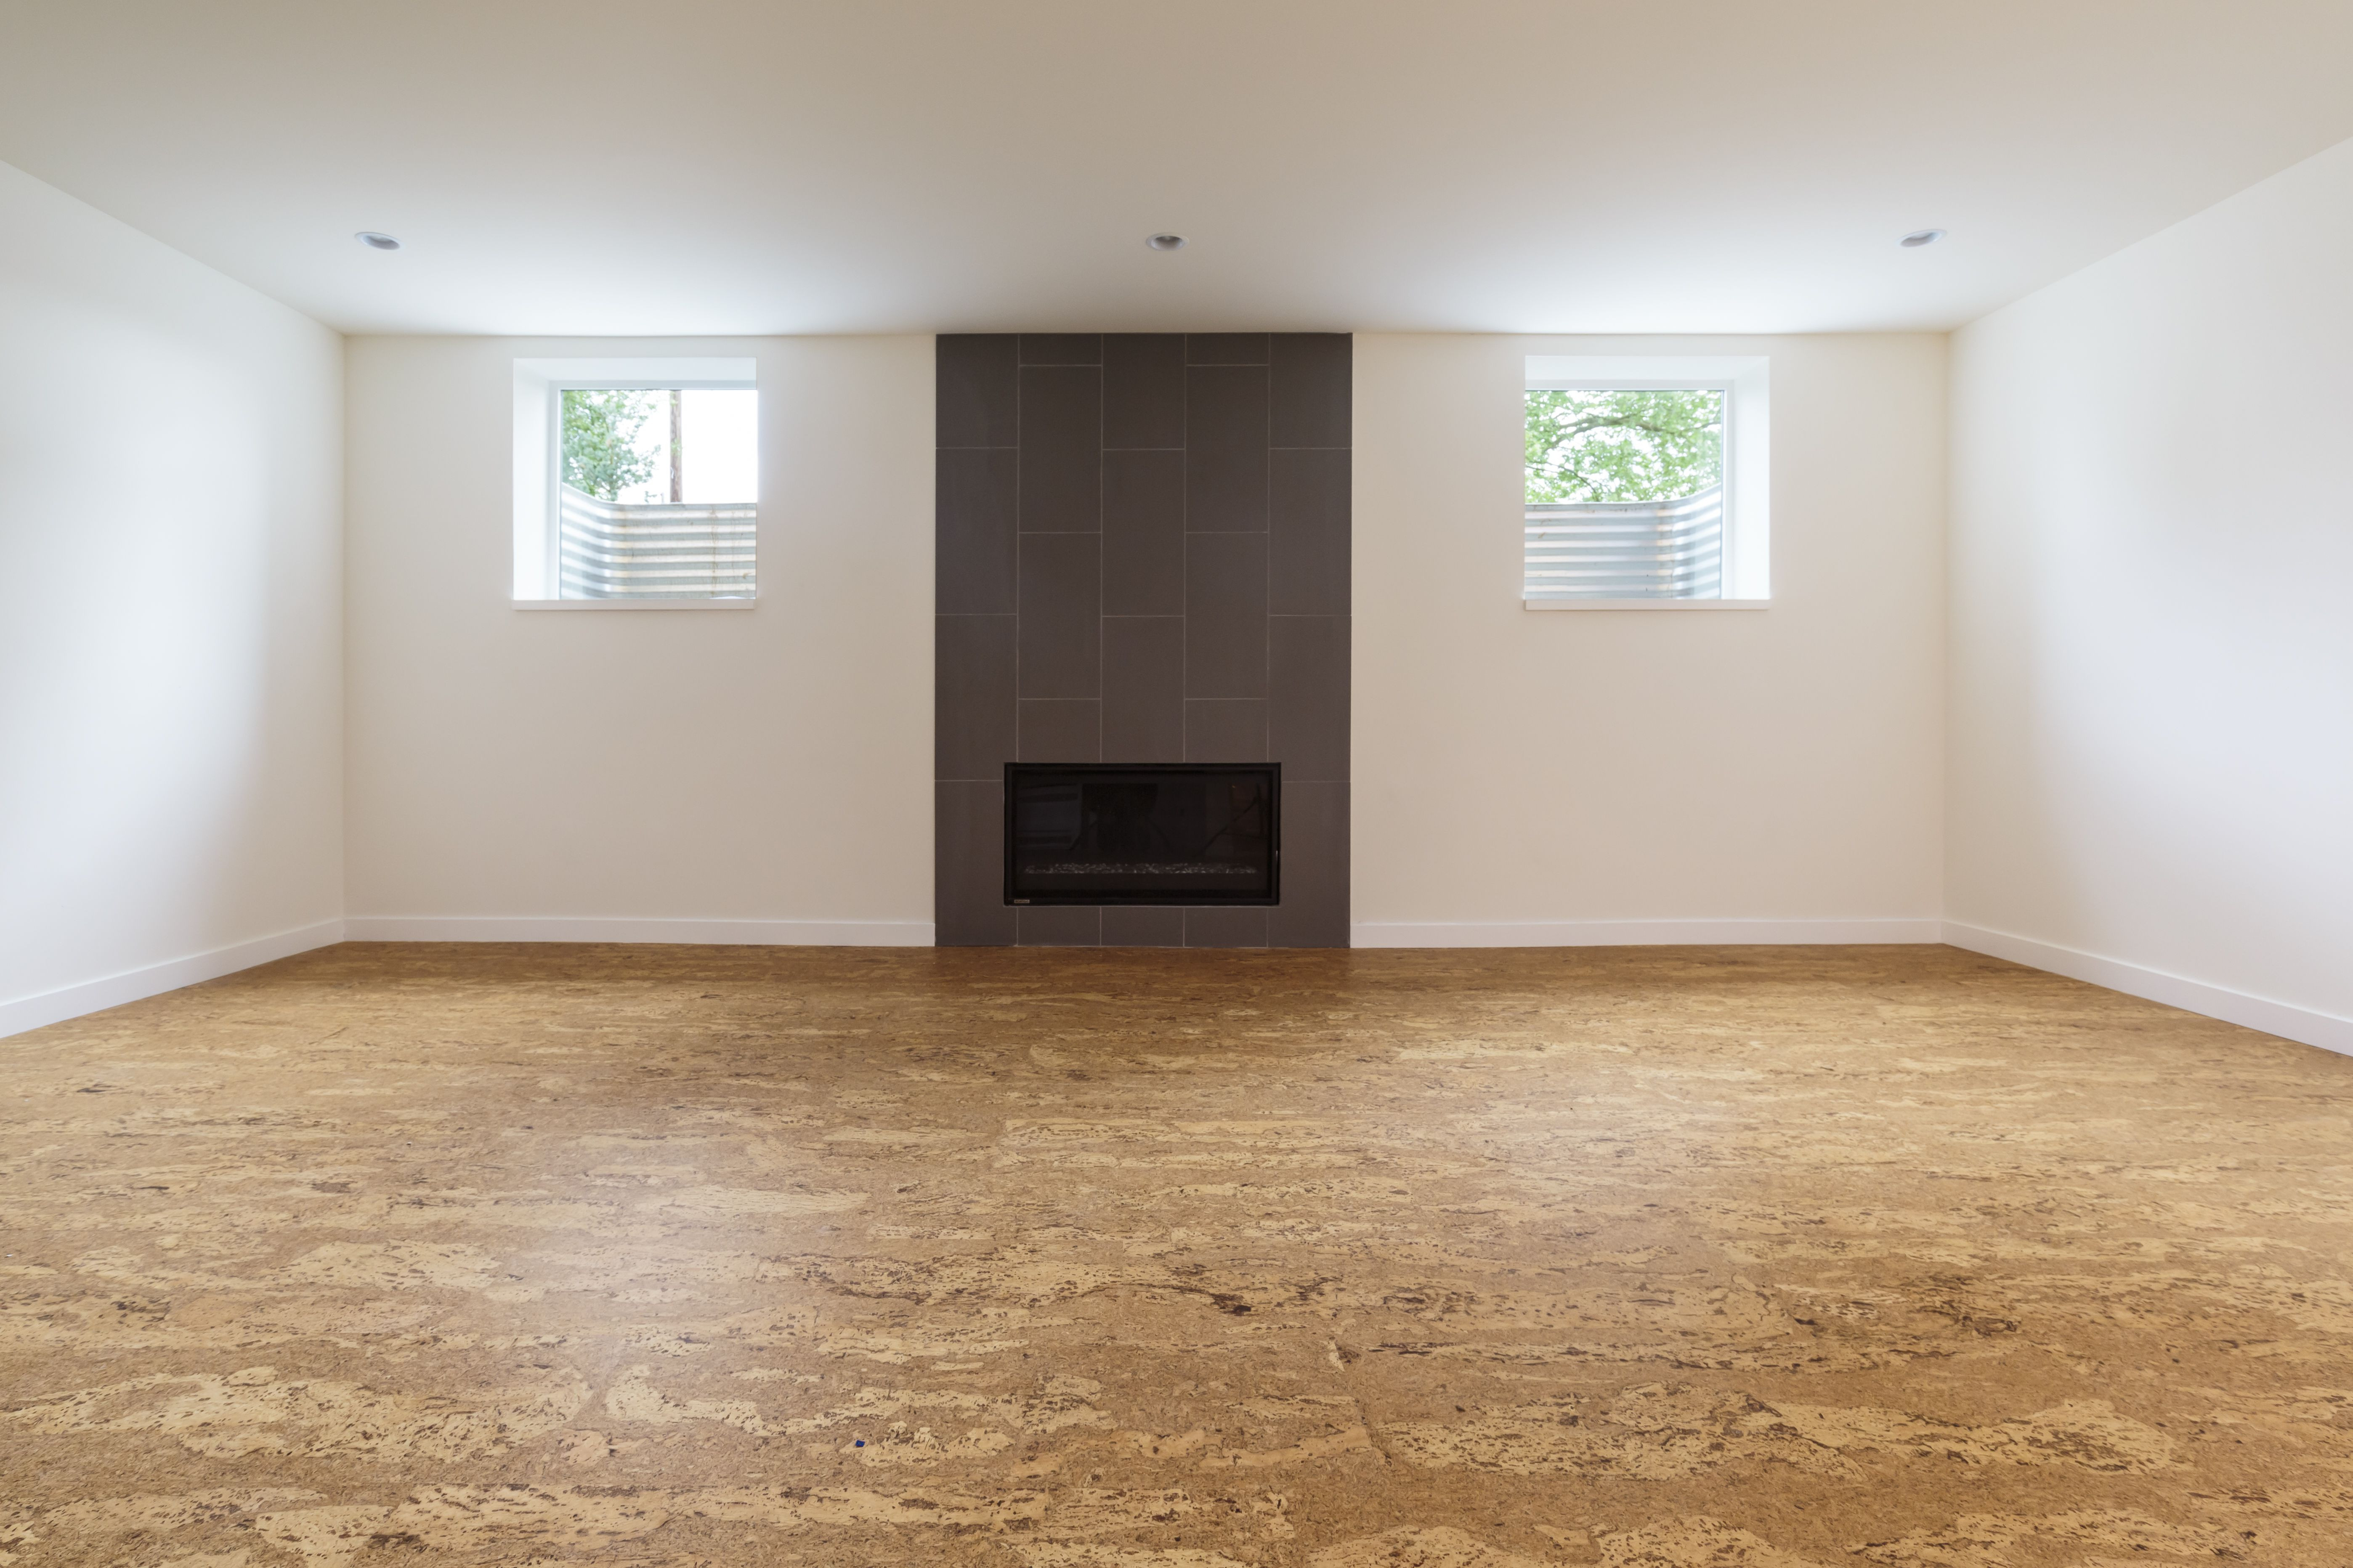 hardwood floor vs tile cost of cork flooring pros cons and cost with cork flooring in unfurnished new home 647206431 57e7c0c95f9b586c3504ca07